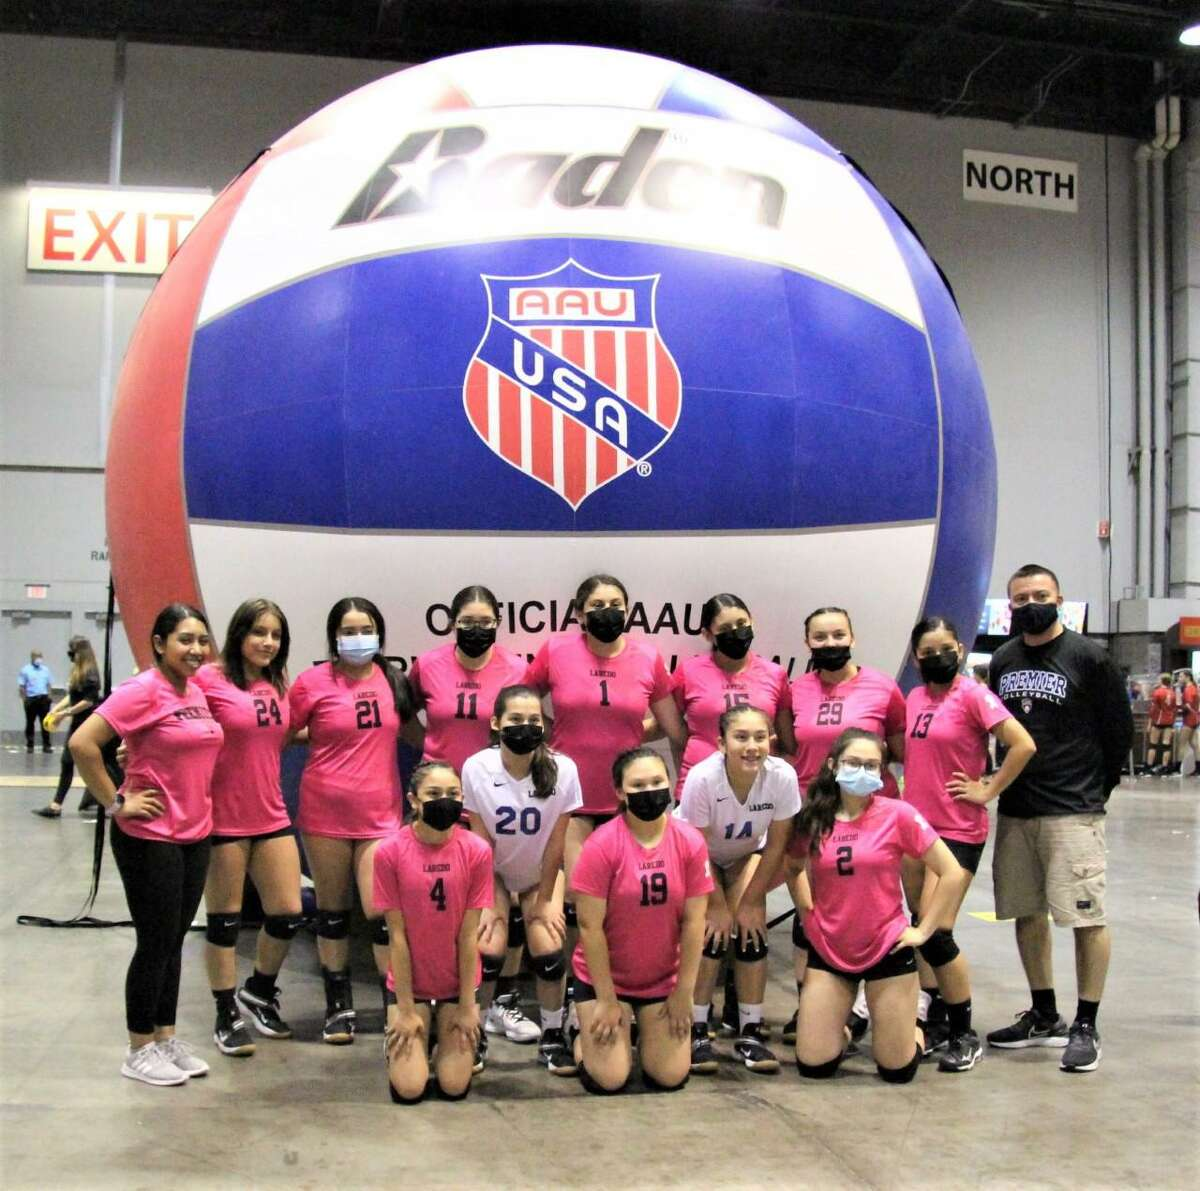 The Laredo Premier 14U Force team went 7-5 at the 48th AAU Junior National Volleyball Championship Tournament held in Florida from June 18-21.